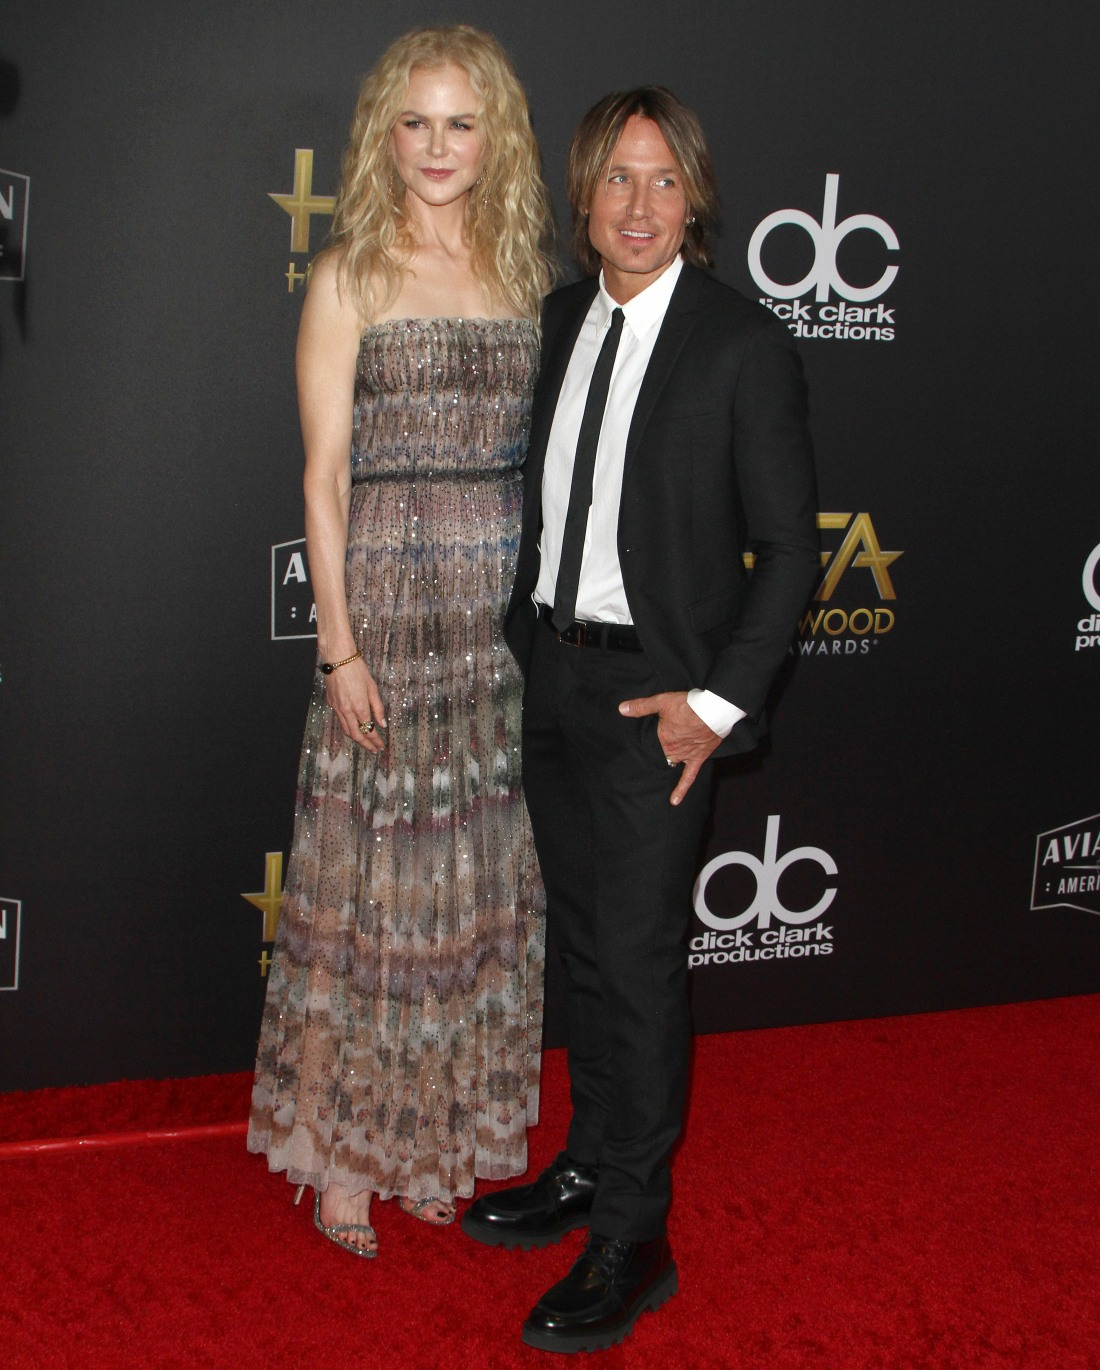 Keith Urban, Nicole Kidman attends The 22nd Annual Hollywood Film Awards in Los Angeles